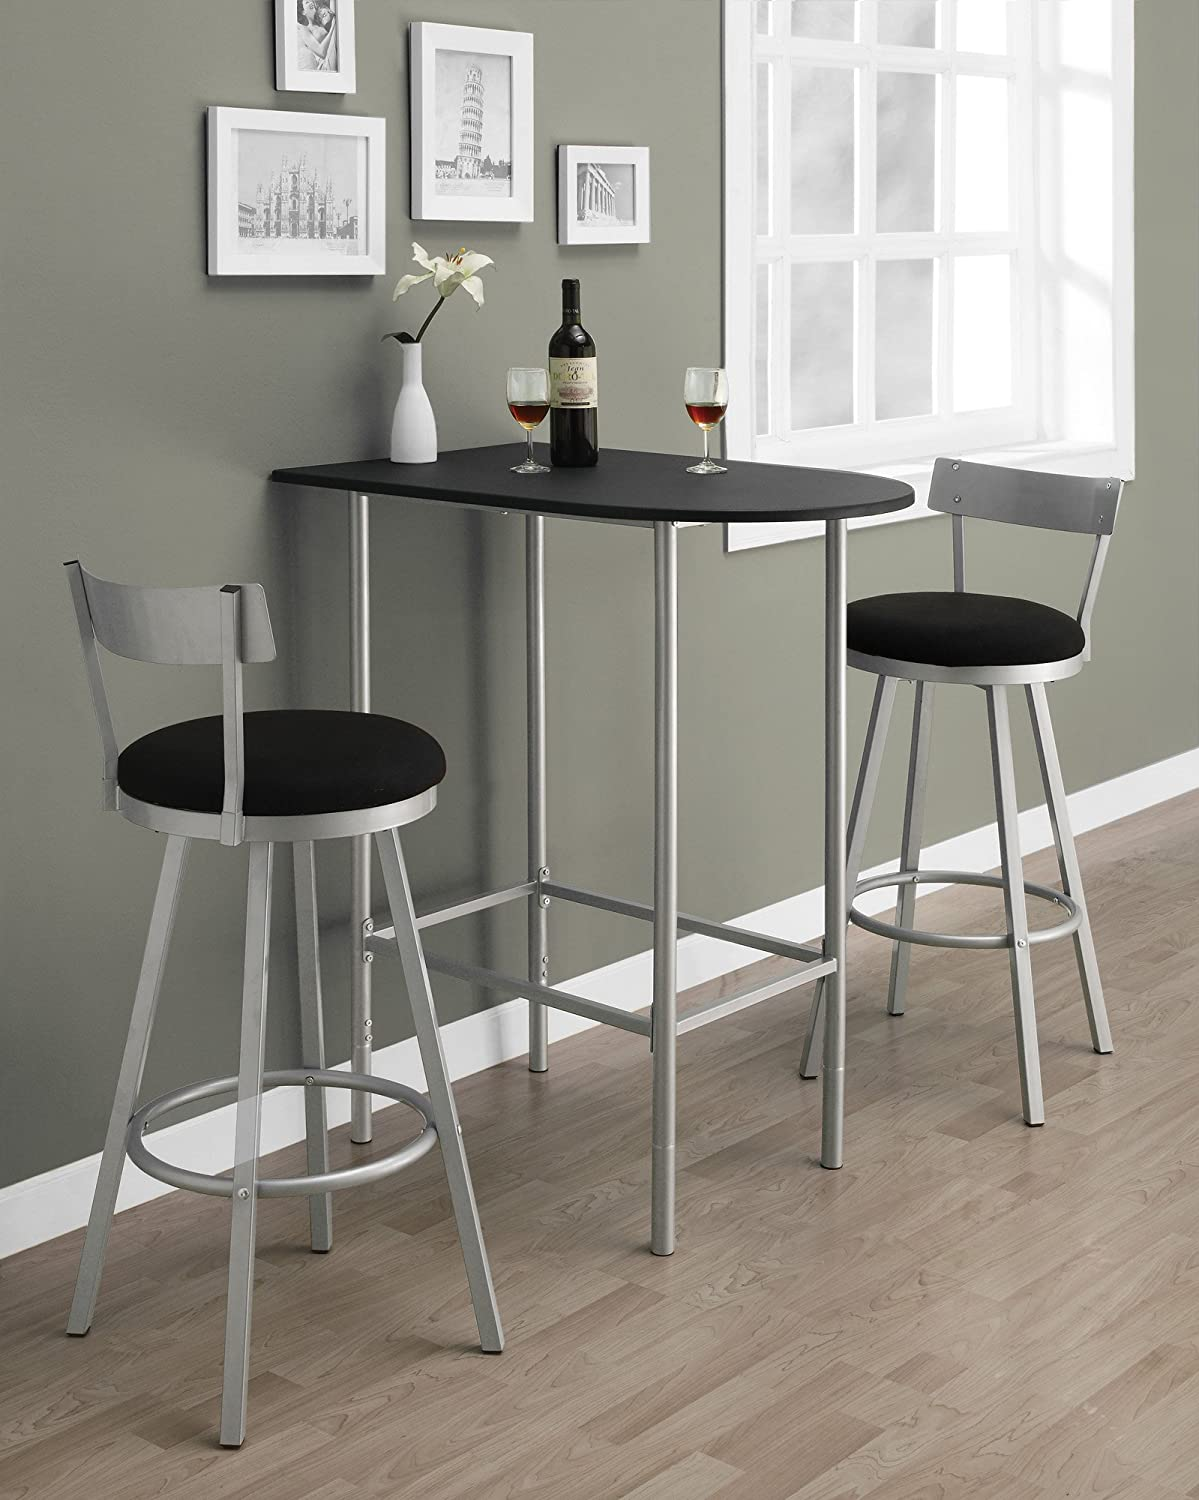 Superieur Amazon.com: Monarch Specialties Space Saver Bar Table, 24 Inch By 36 Inch,  Black/Silver Metal: Kitchen U0026 Dining